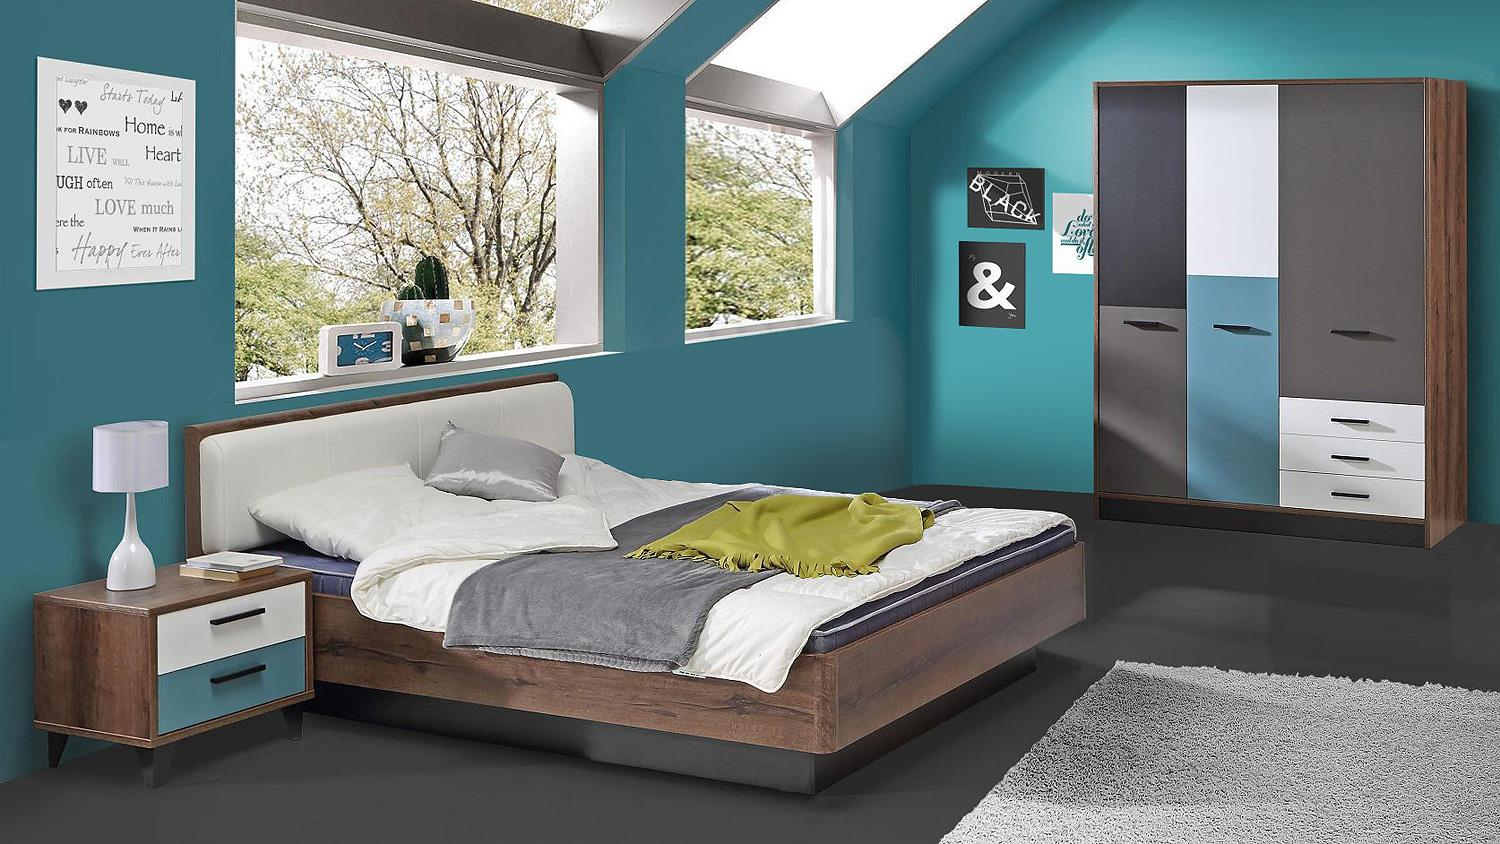 jugendzimmer 2 raven in schlammeiche wei schwarz gr n grau. Black Bedroom Furniture Sets. Home Design Ideas